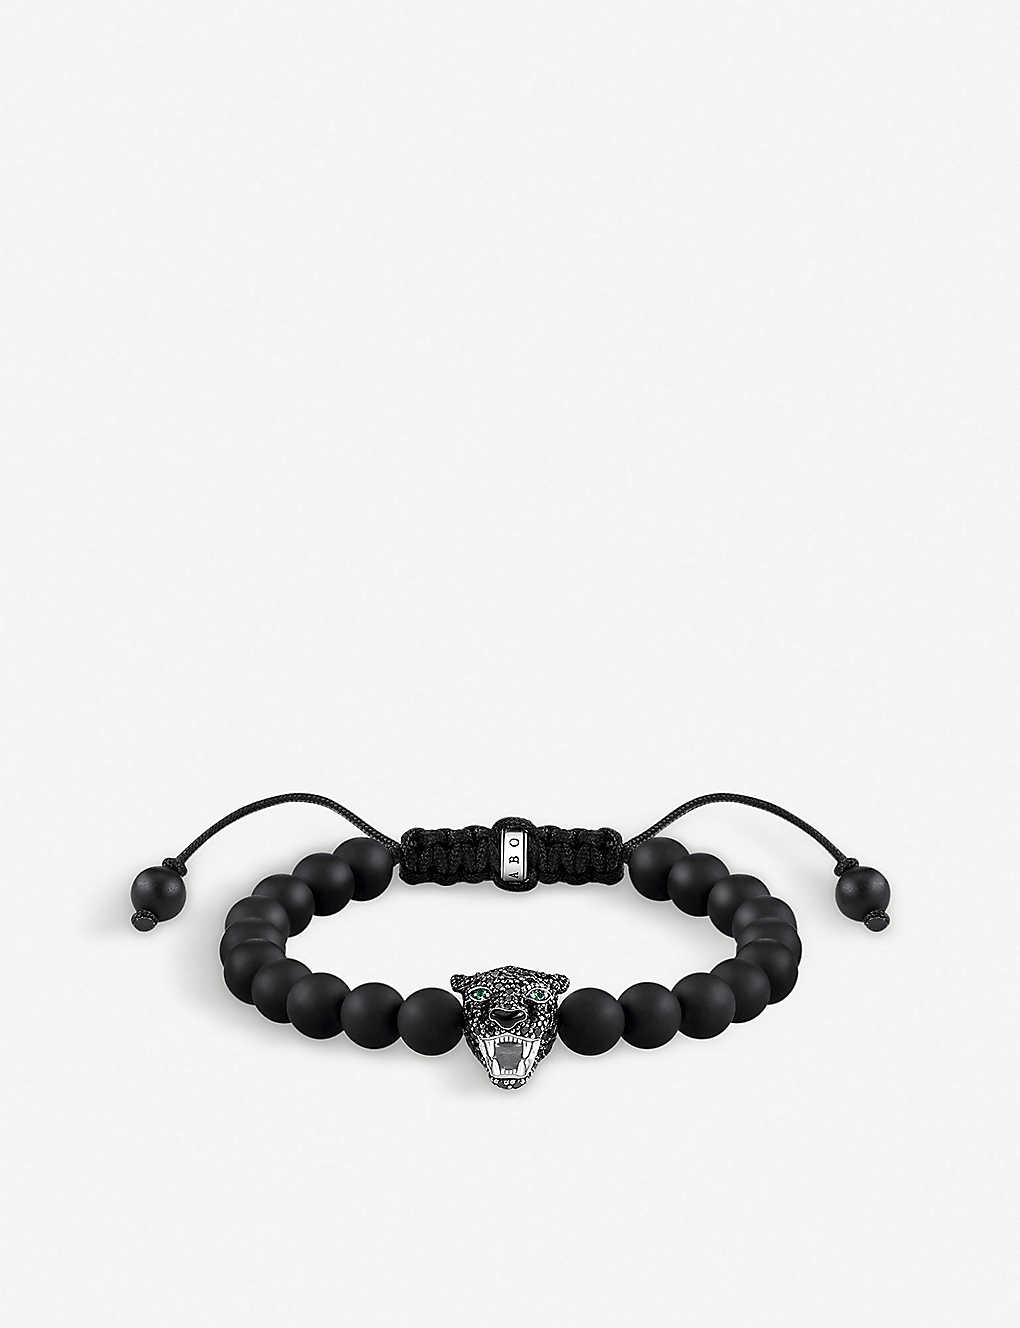 THOMAS SABO: Rebel at Heart sterling silver and obsidian Cat bracelet